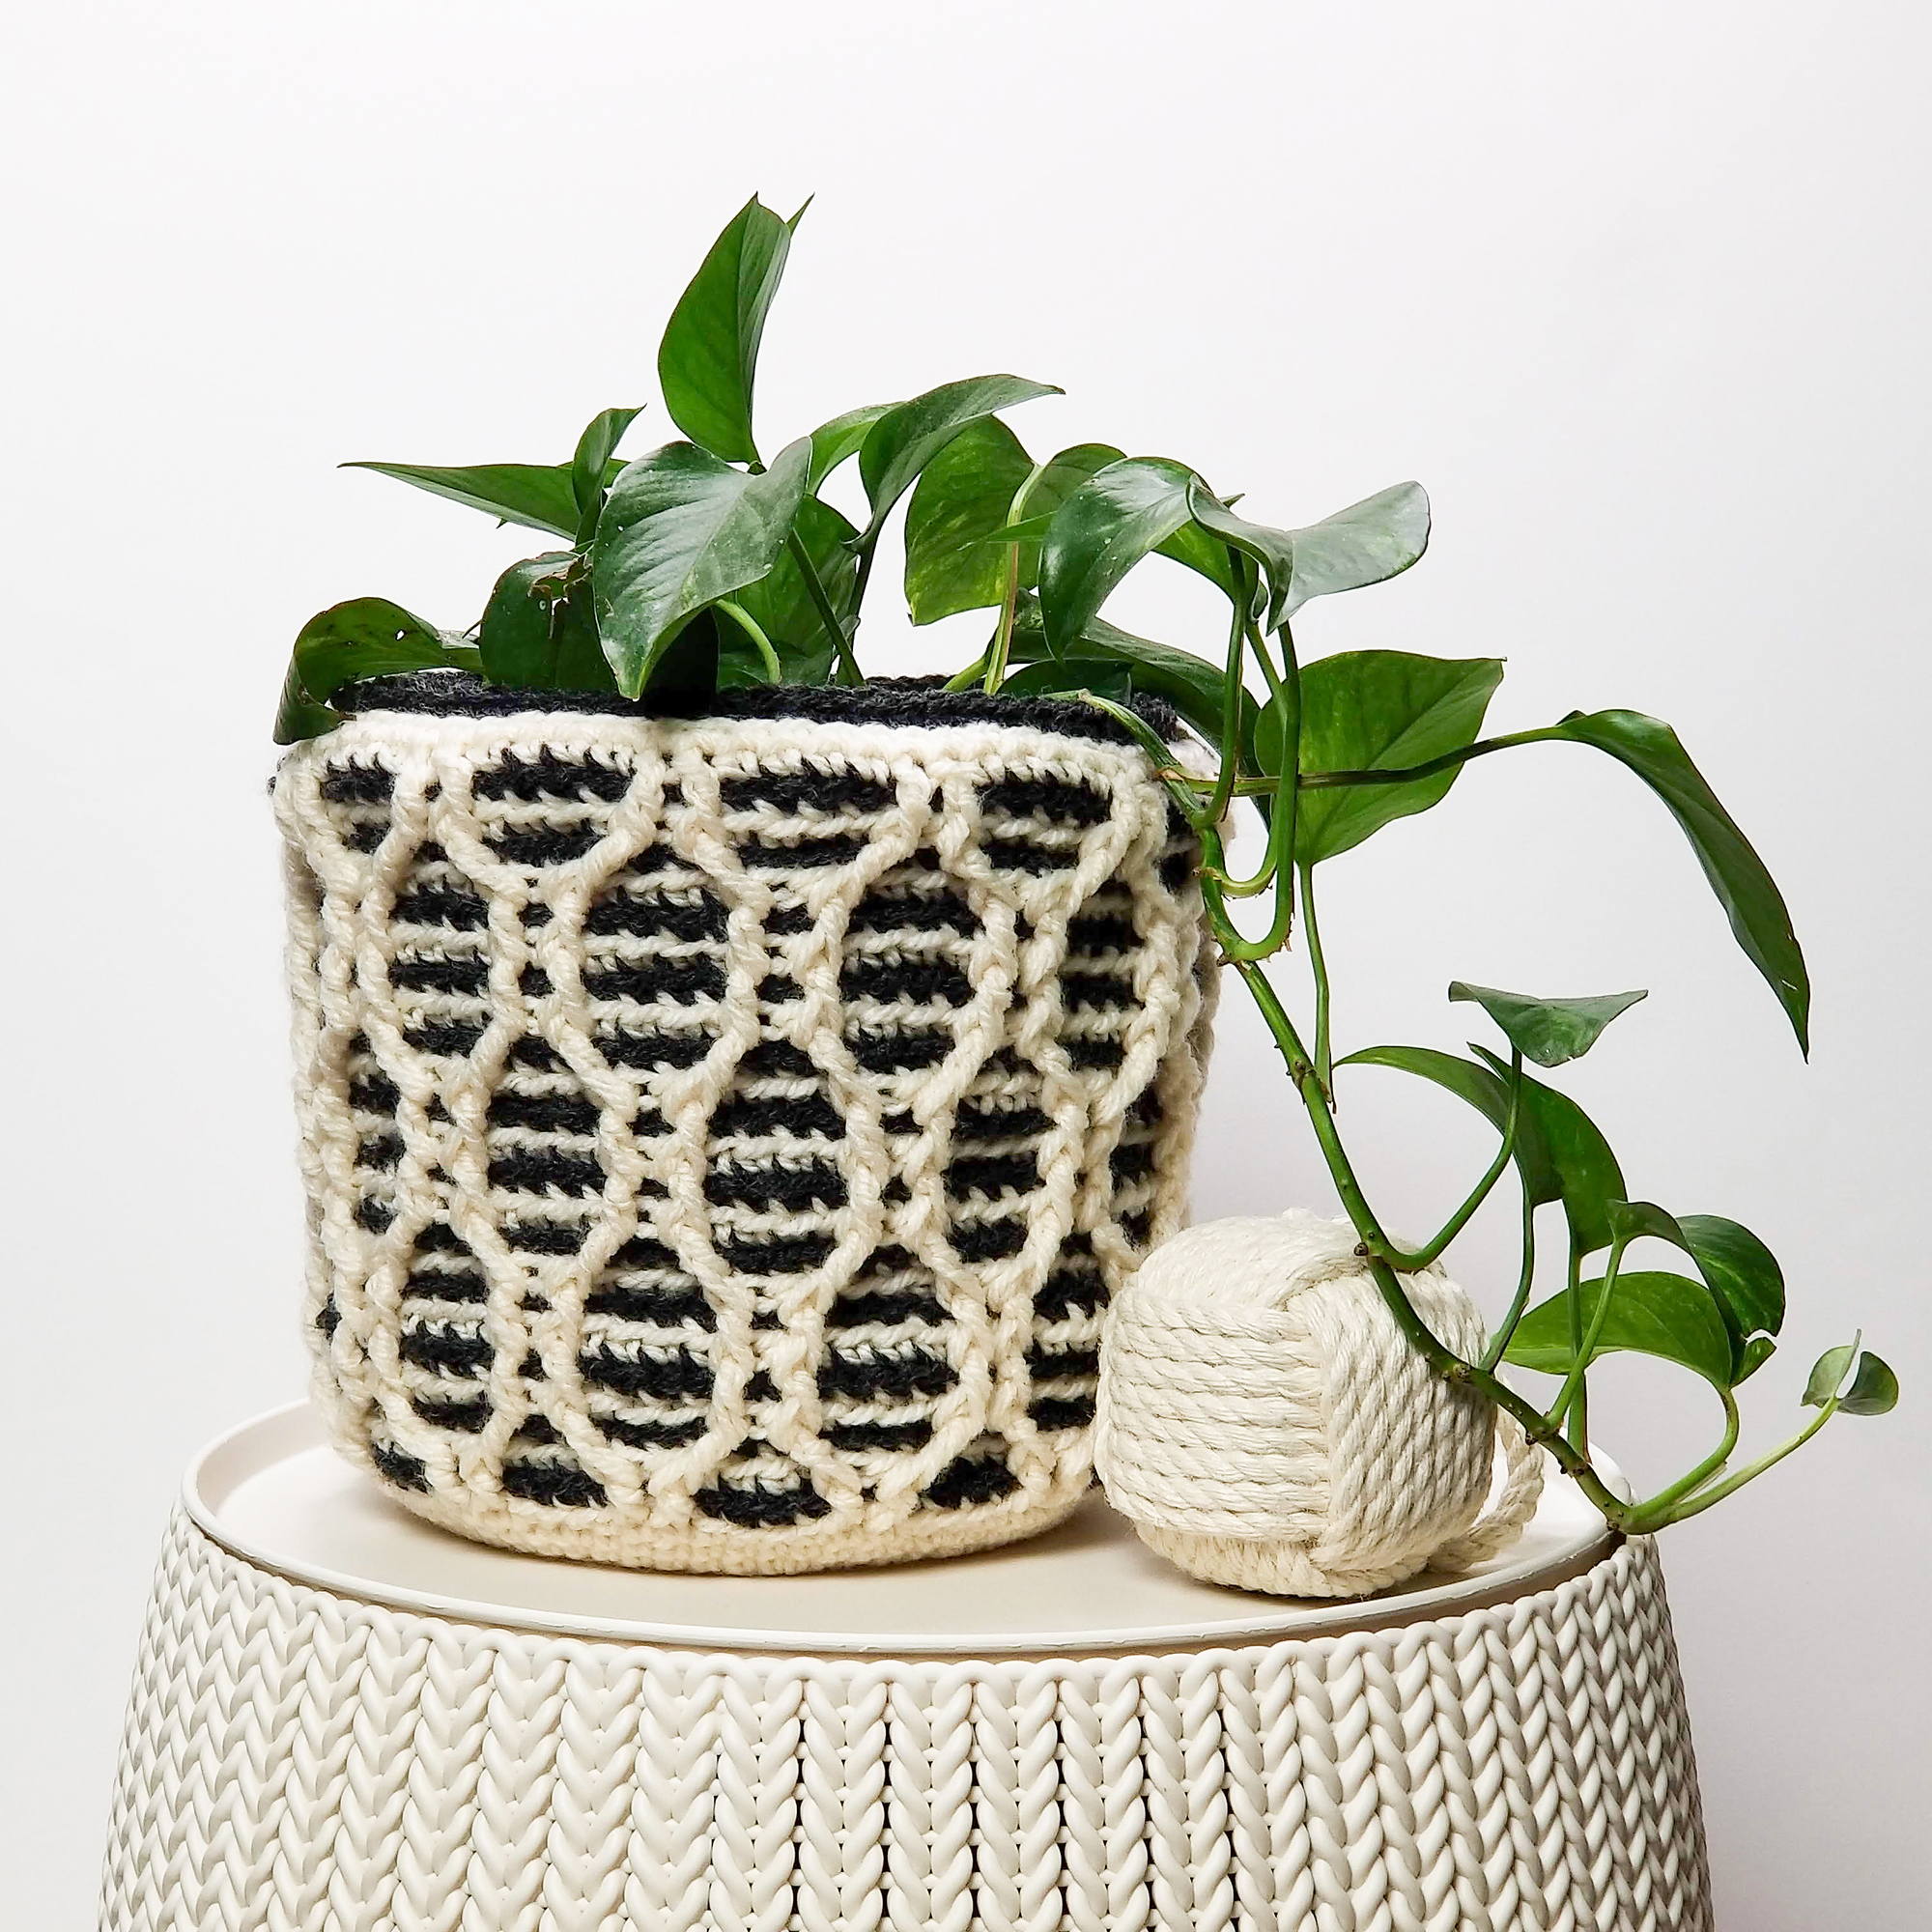 Patons Striped Hourglass Basket in black and cream color